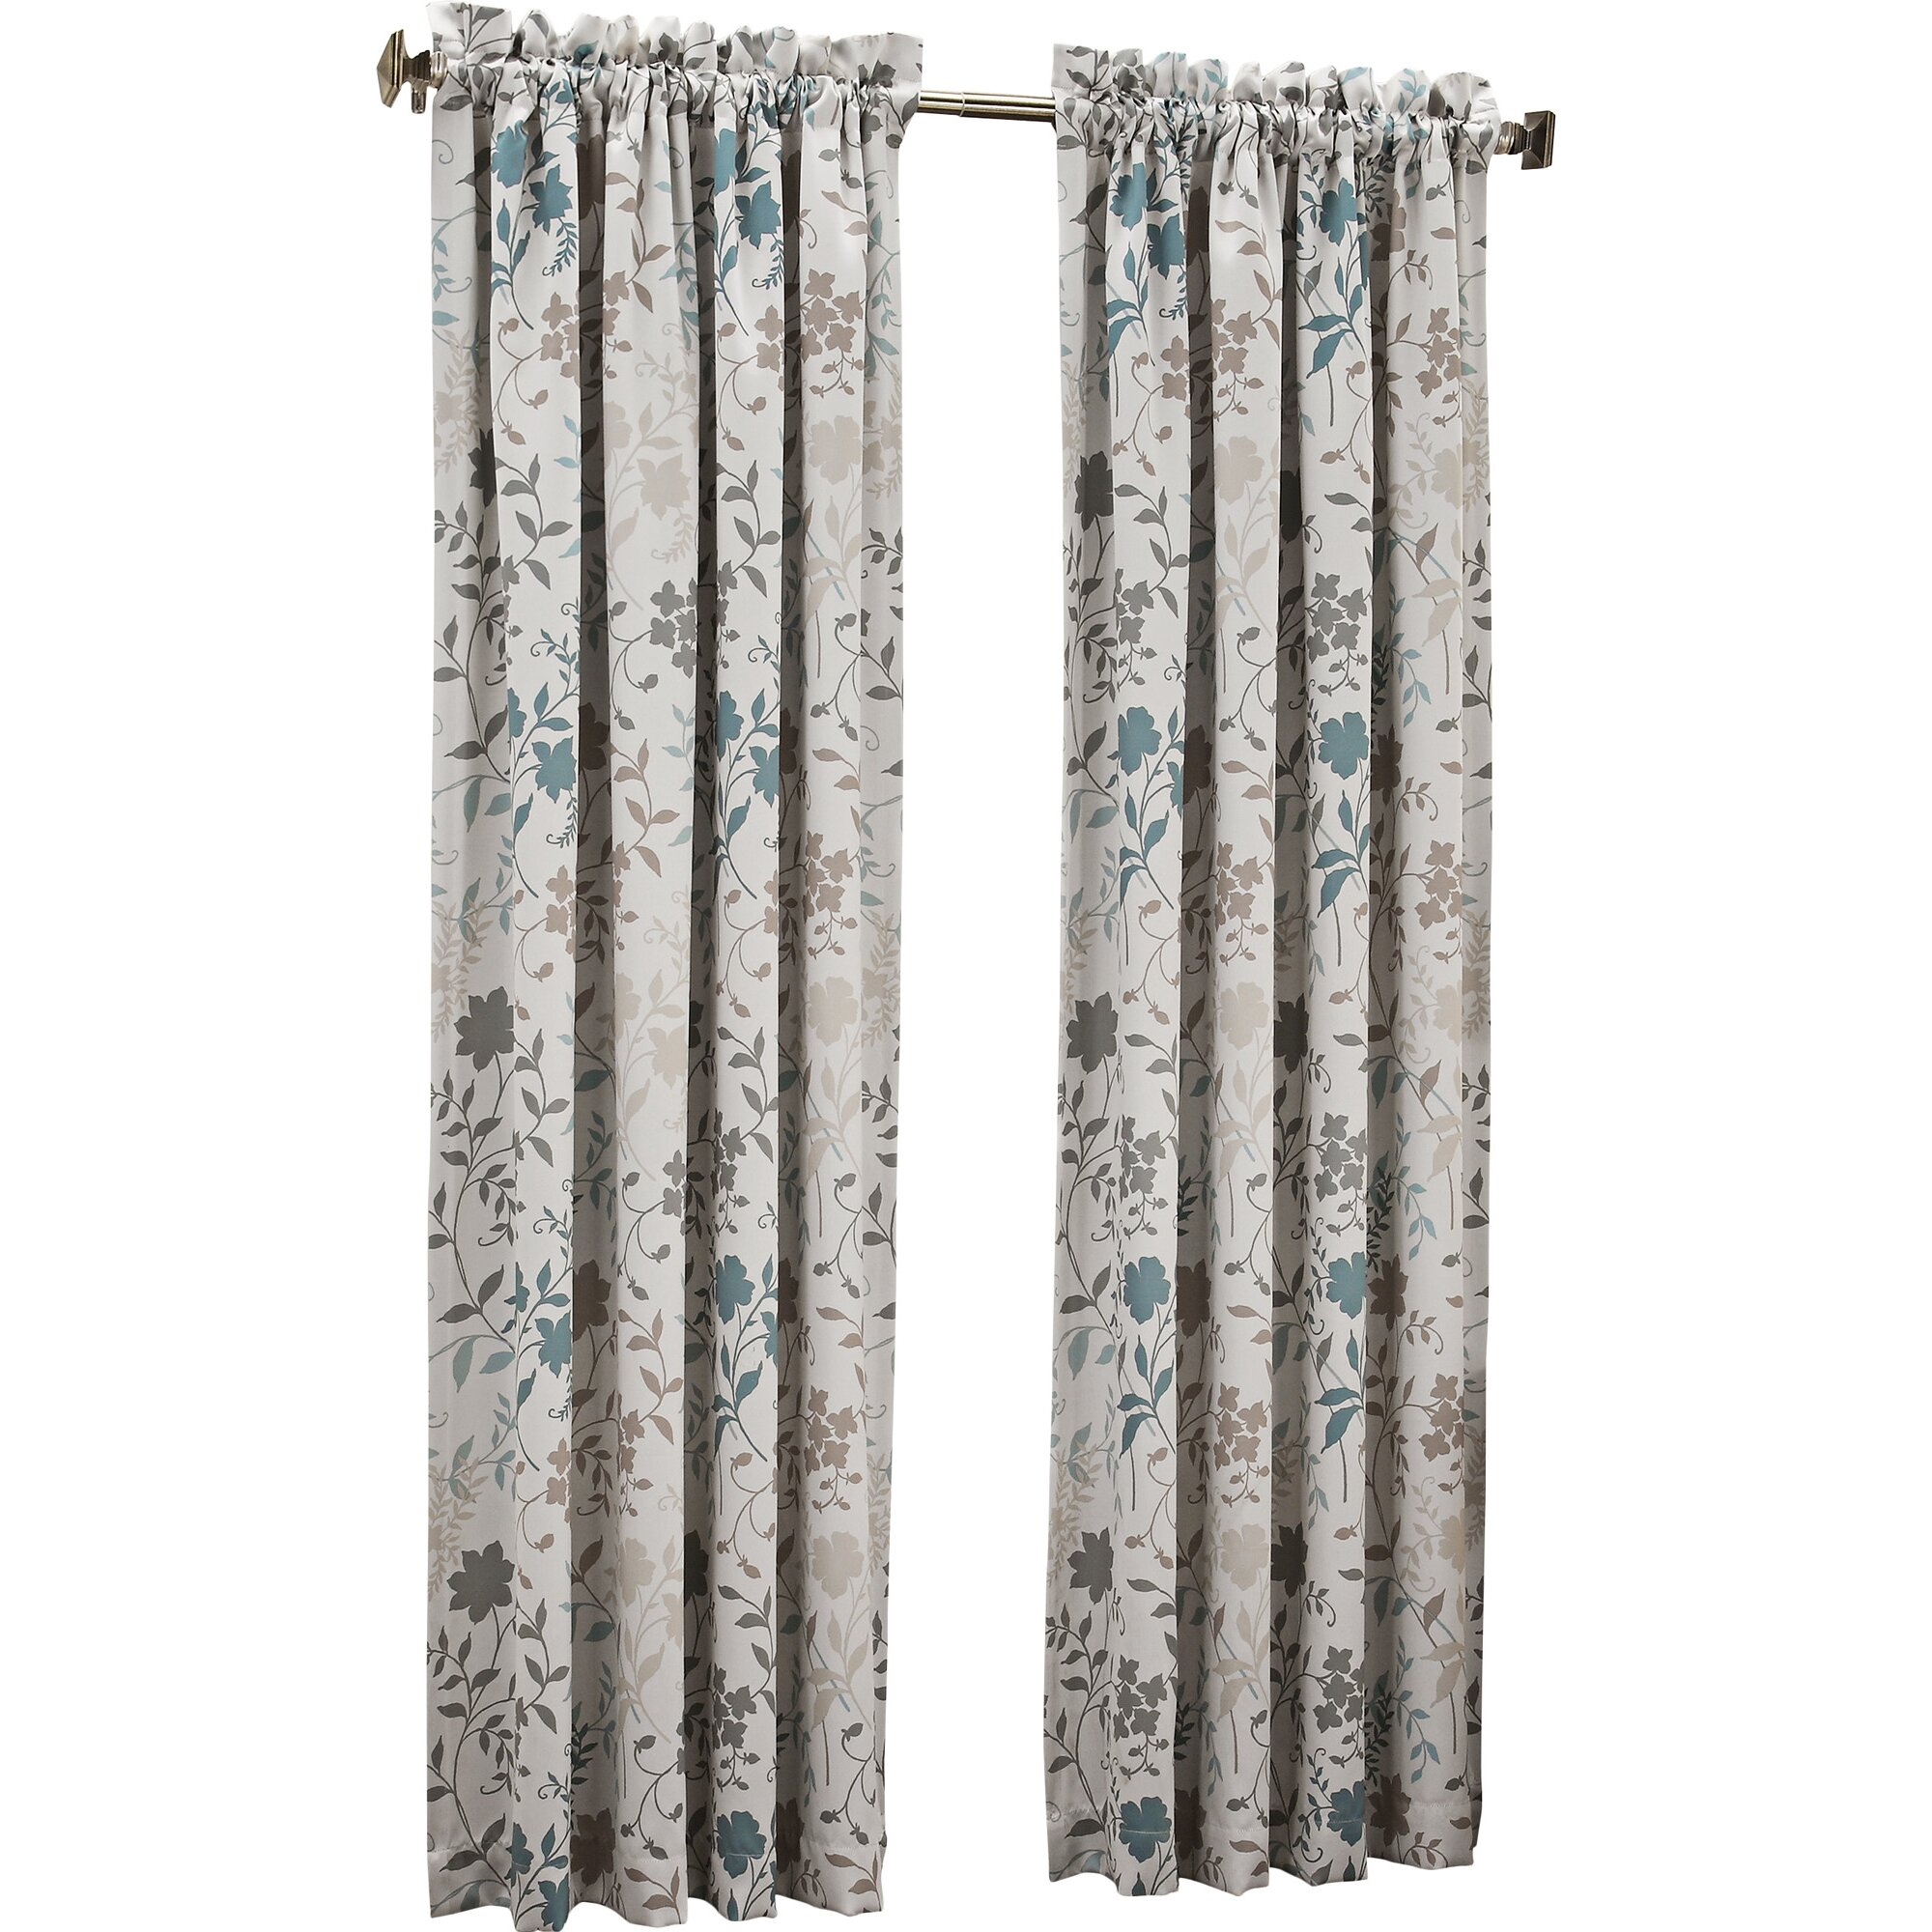 Sun Zero Auburn Floral Print Rod Pocket Single Curtain